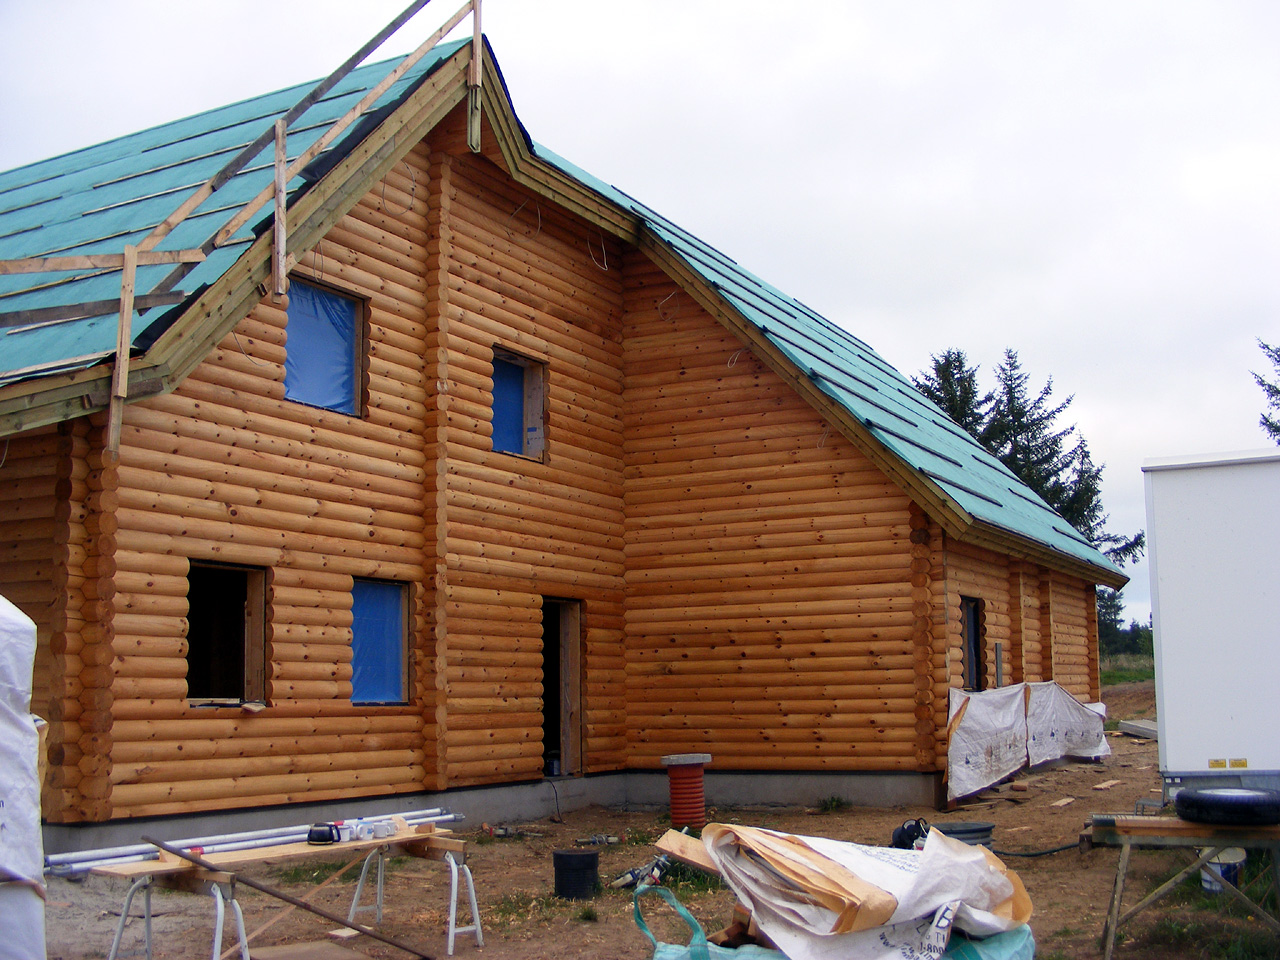 Log cabin log cabin homes log home kits log house for Rustic log home kits